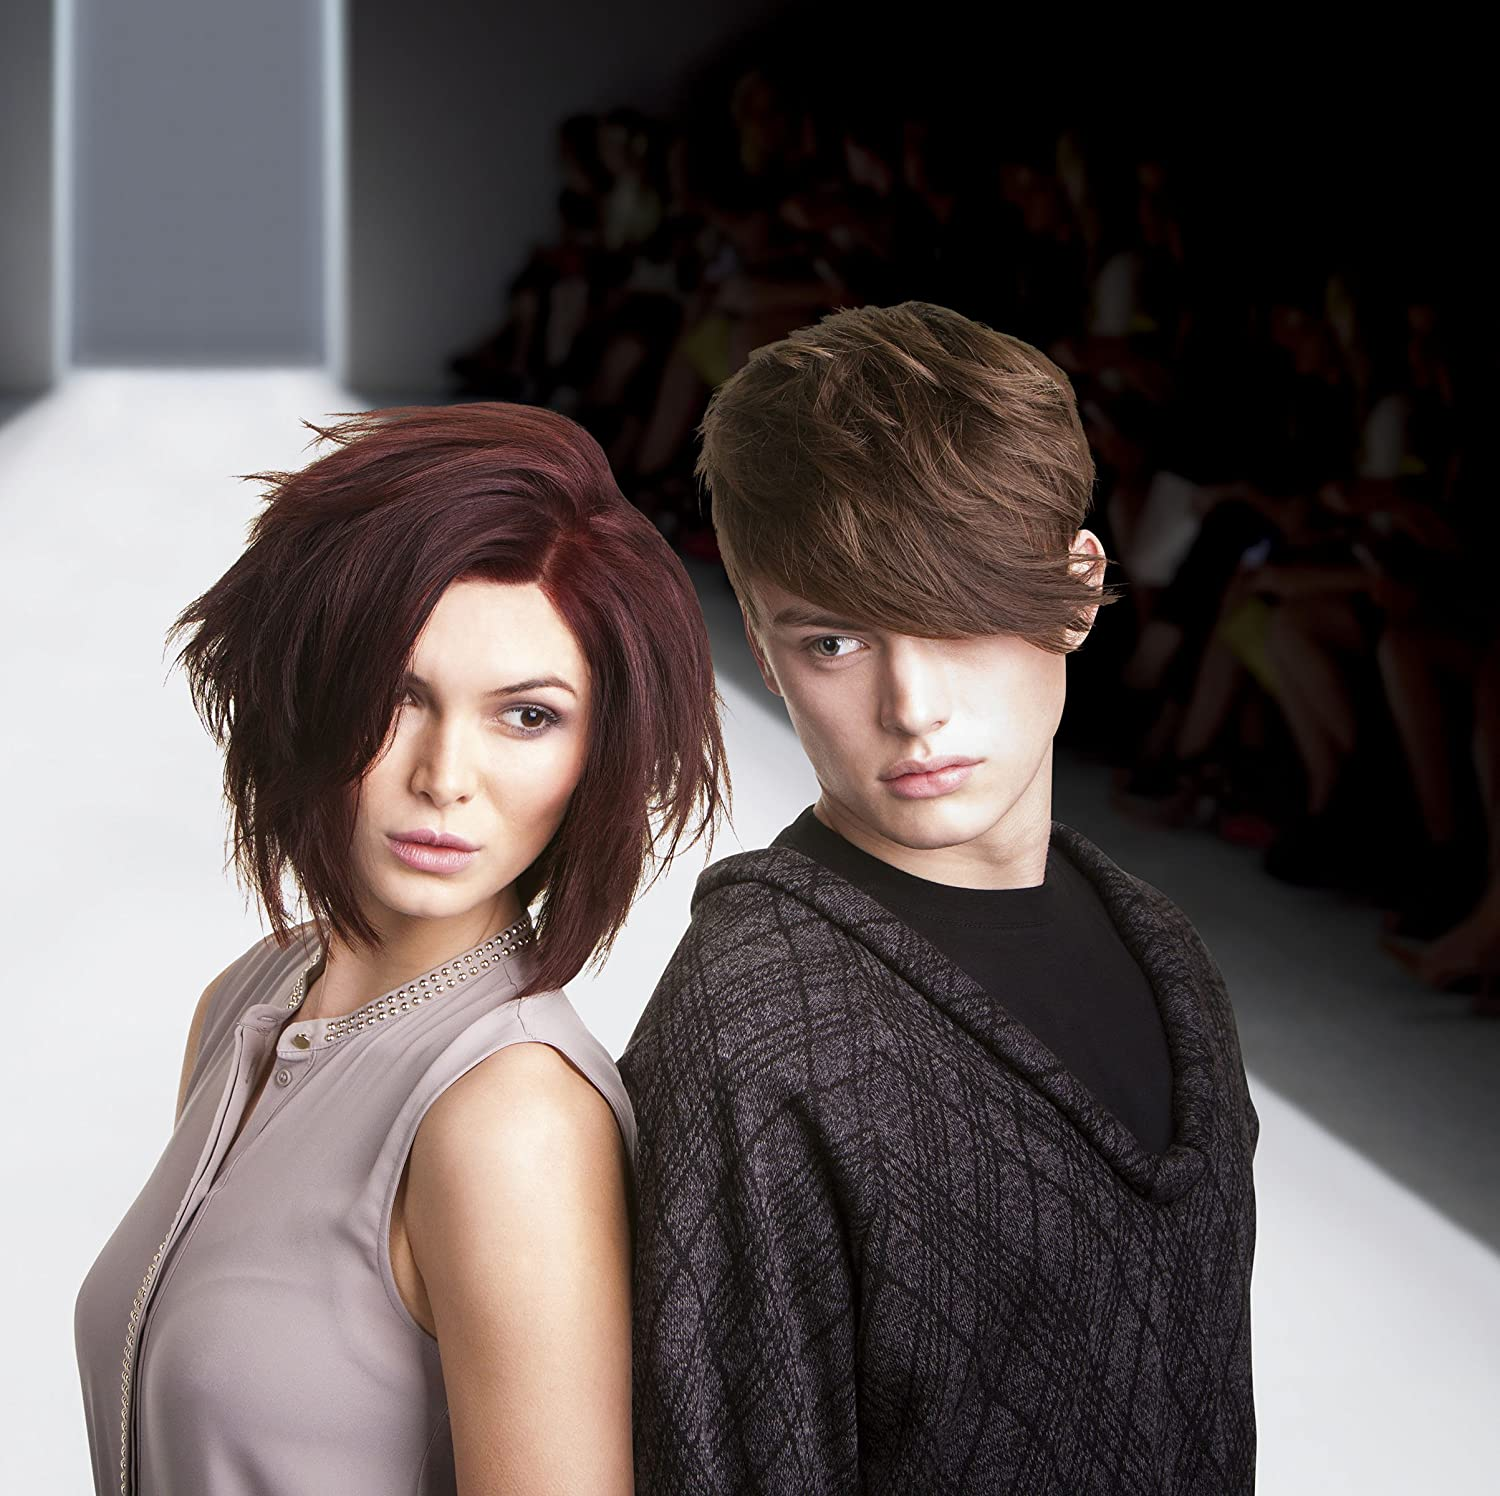 toni and guy models